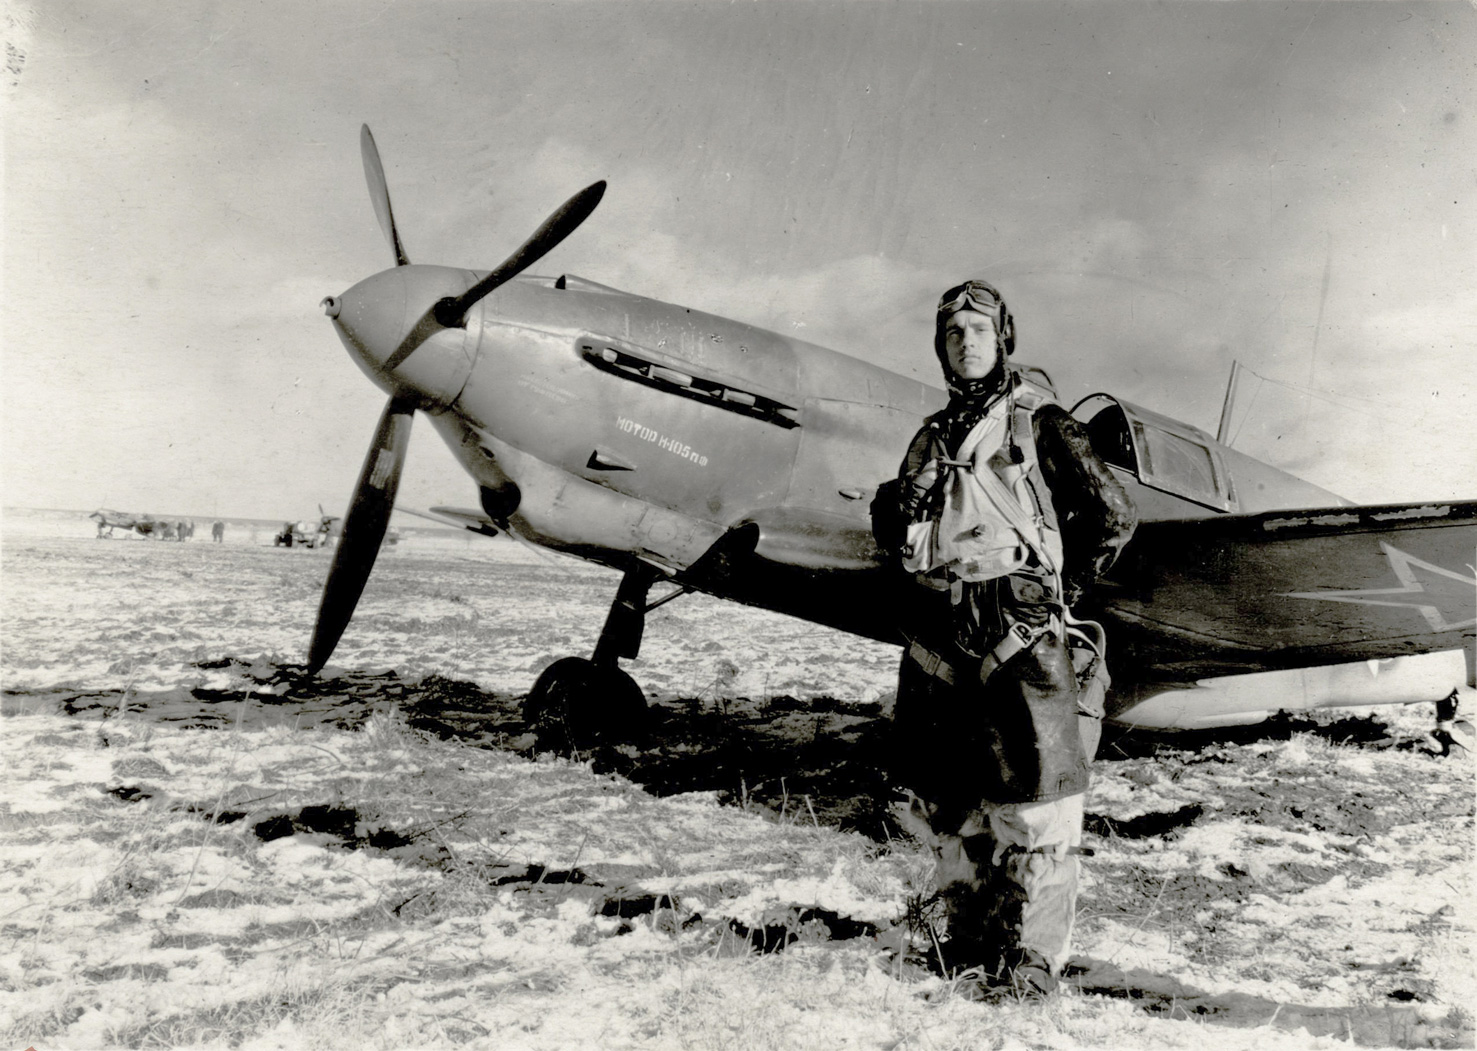 soviet-aces-ww2-hero-of-the-soviet-union-kulagin-andrey-mihailovich-standing-in-front-of-the-fighter-lagg-3-series-66-bw.jpg